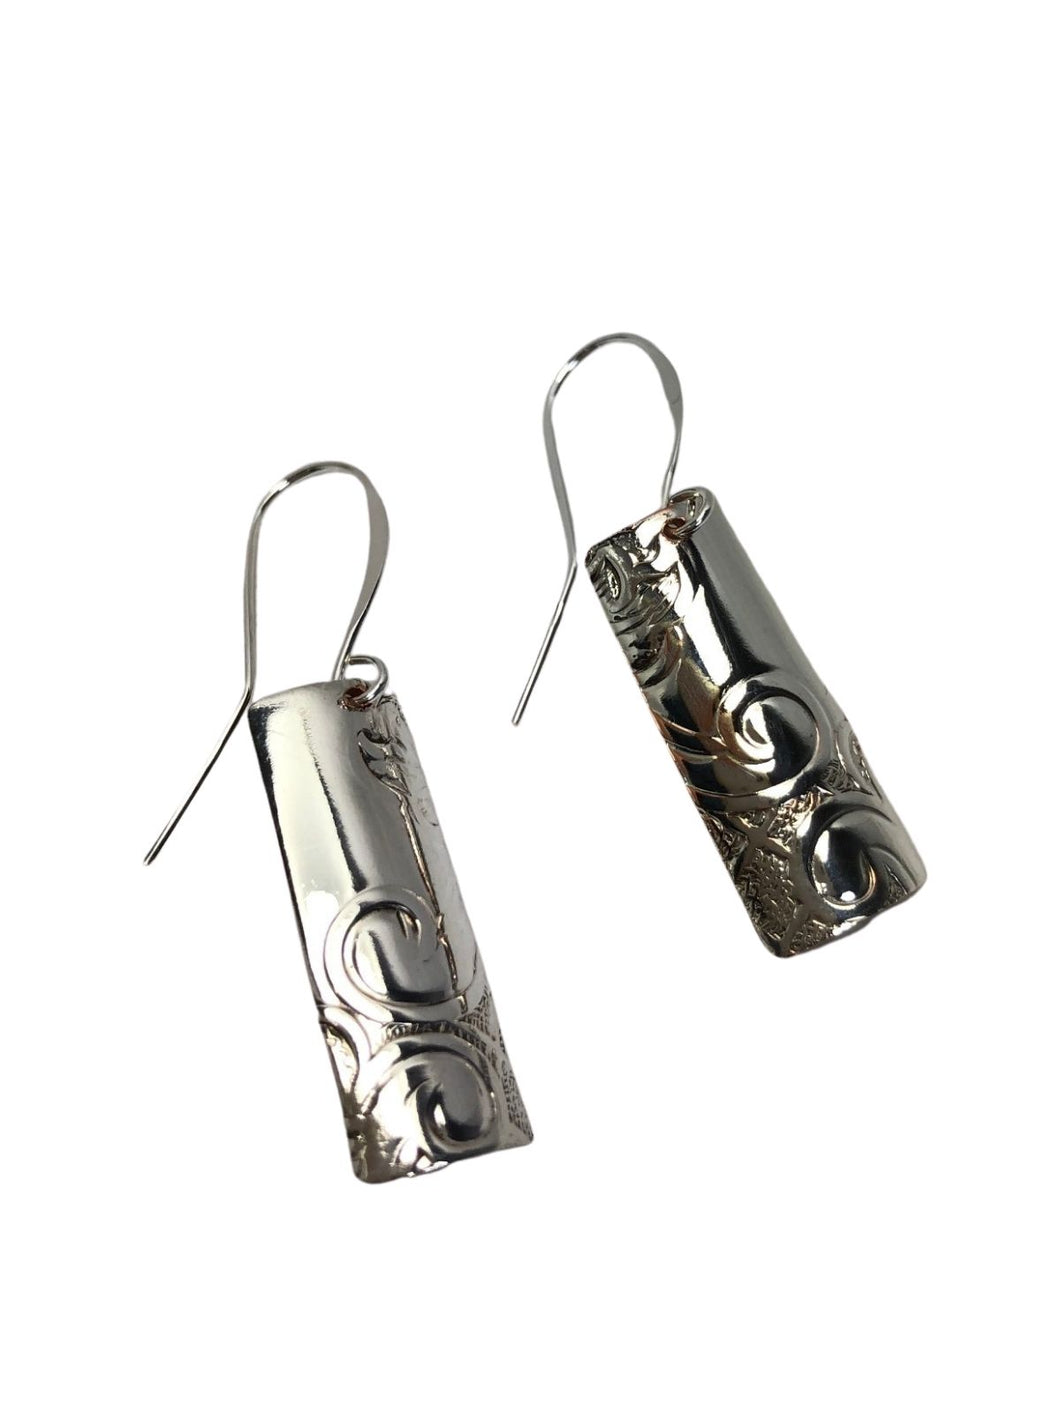 VINTAGE SILVER COLLECTION EARRINGS - BAR DESIGN